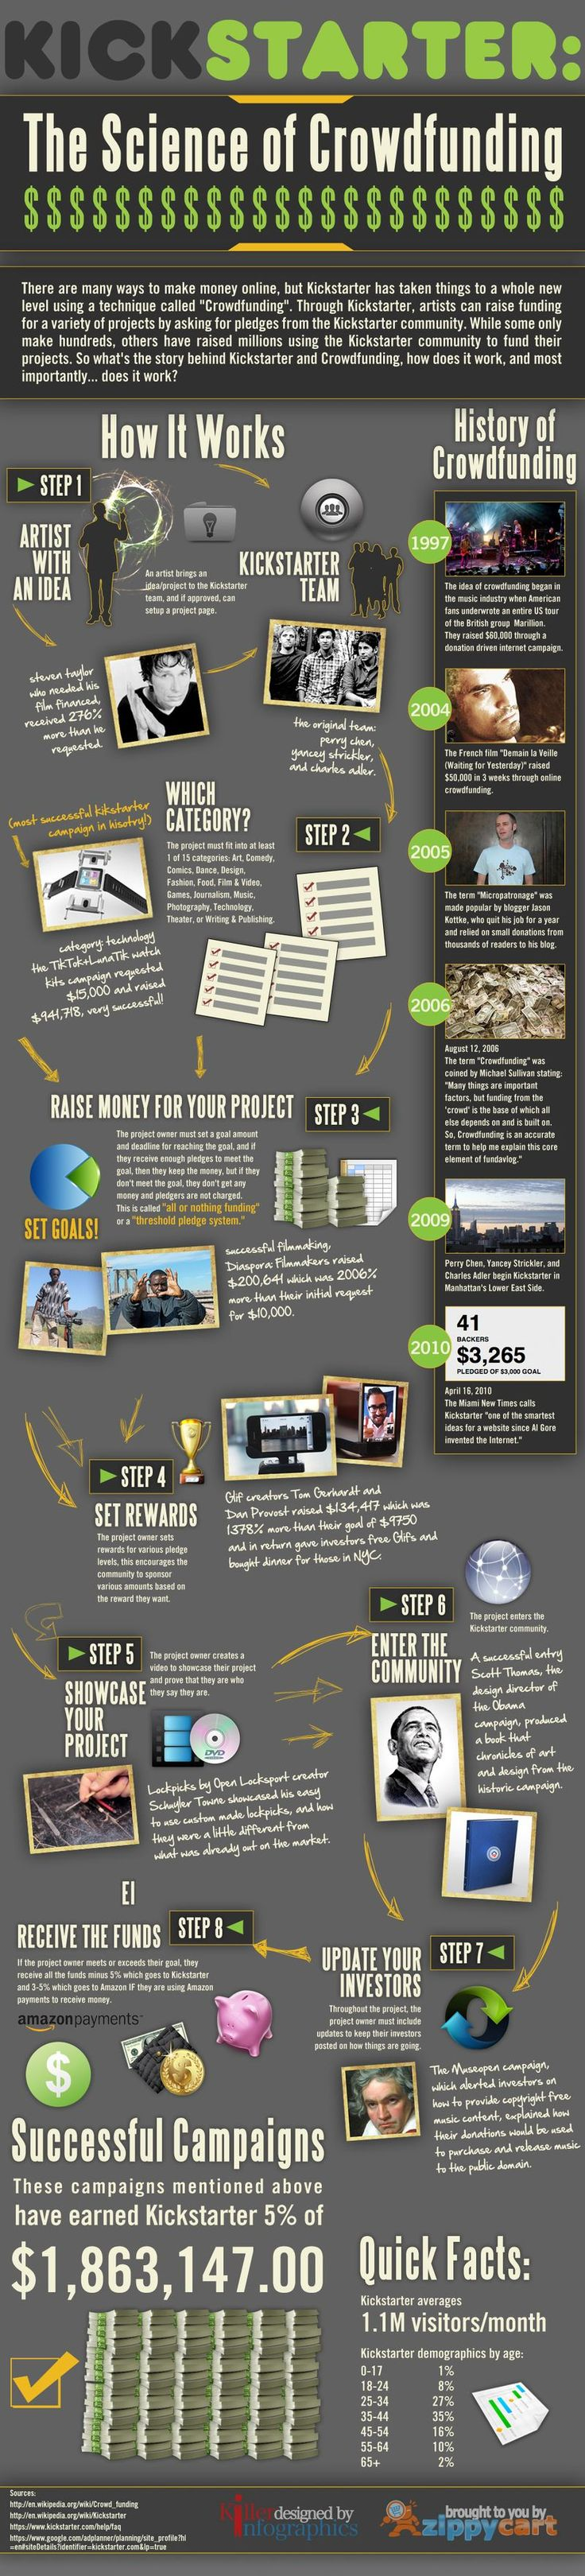 Kickstarter Infographic - Crowdfunding is the future